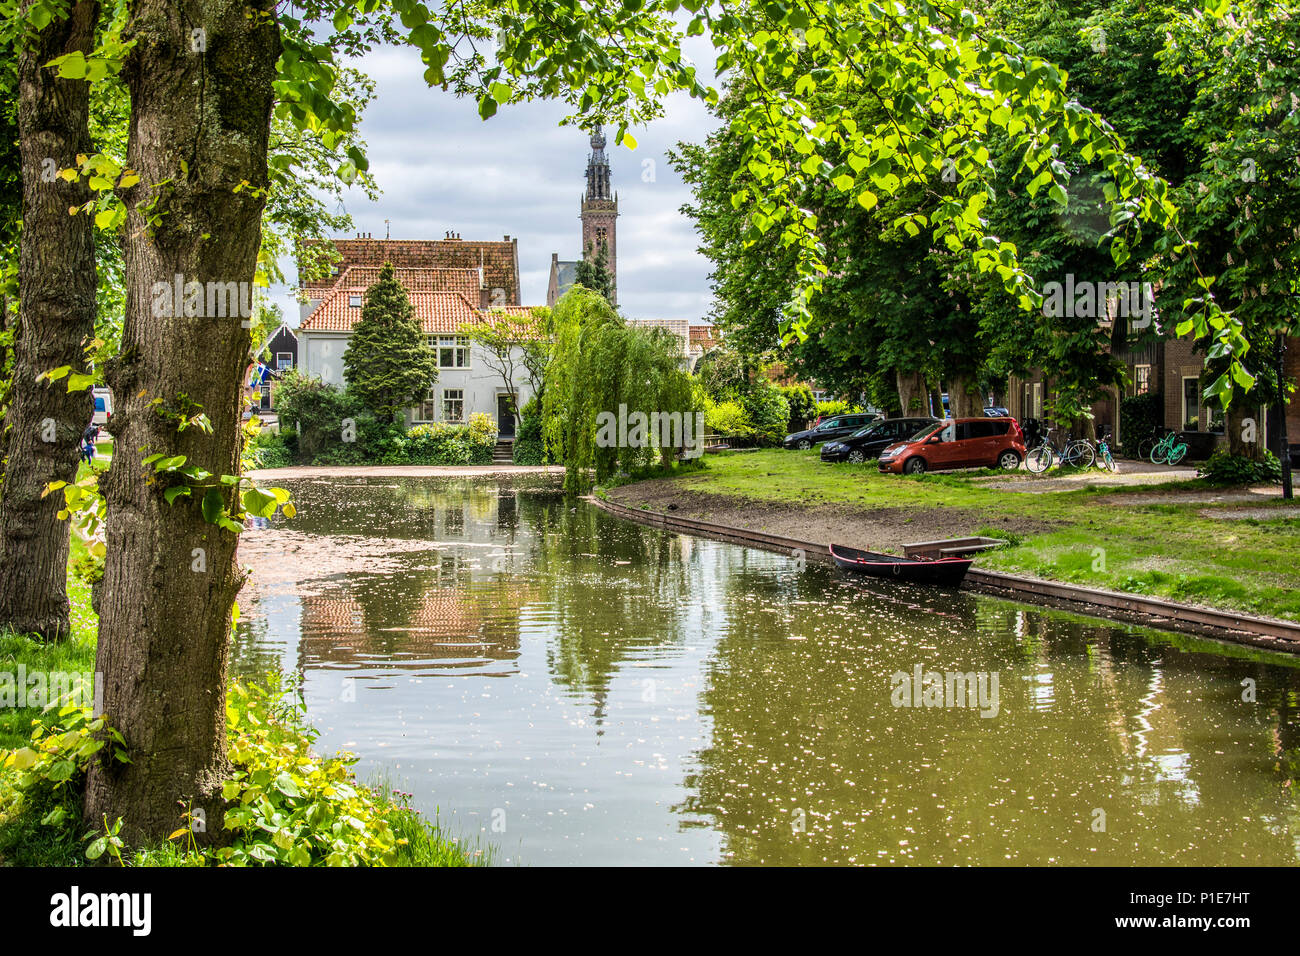 Classic Dutch landscape with calm water canal boat and in the background the dome of the church of the village of Edam Netherlands - Stock Image